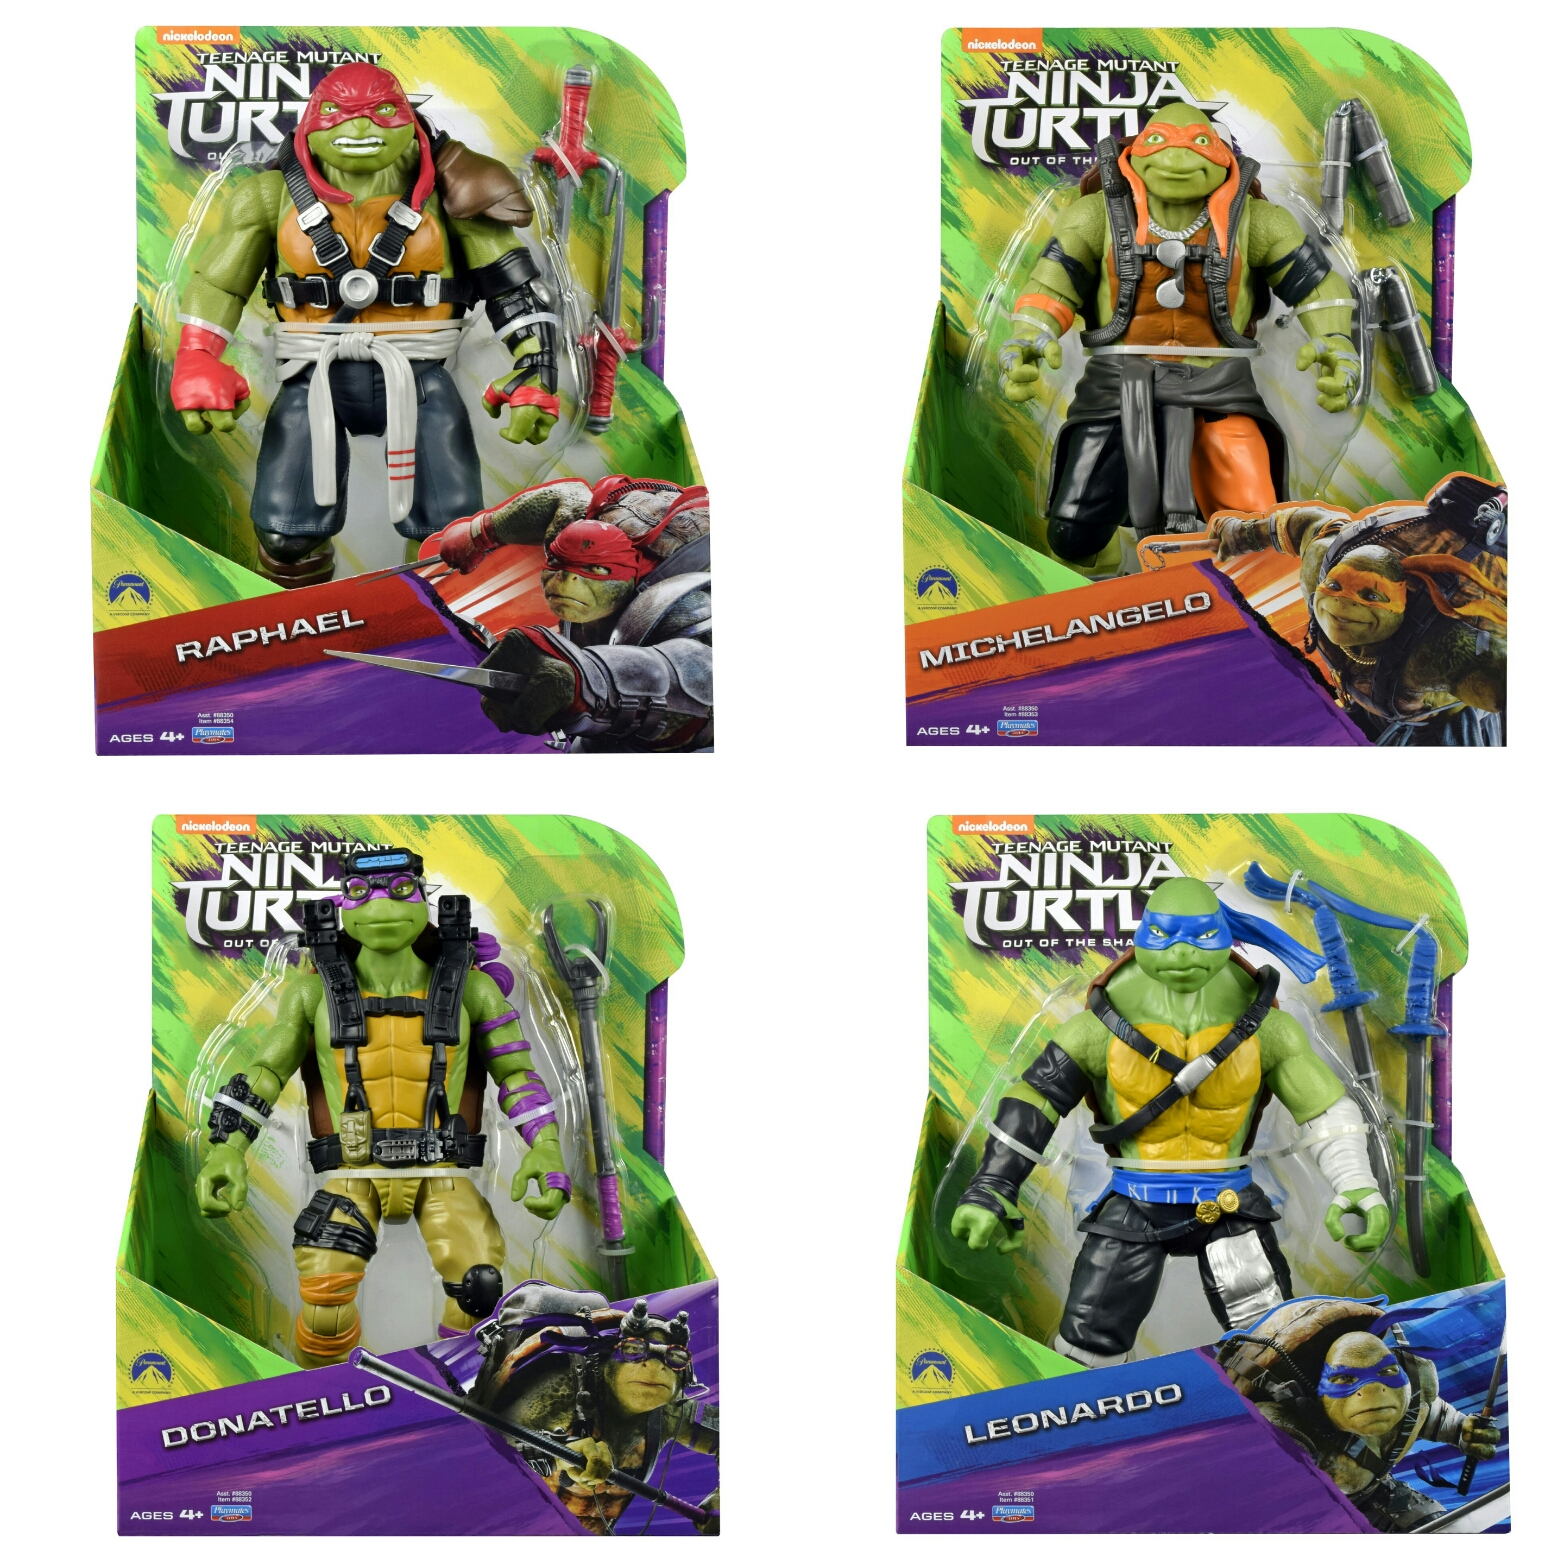 Teenage Mutant Ninja Turtles Come Out Of The Shadows With Action Packed Movie Toy Line Alternative Mindz